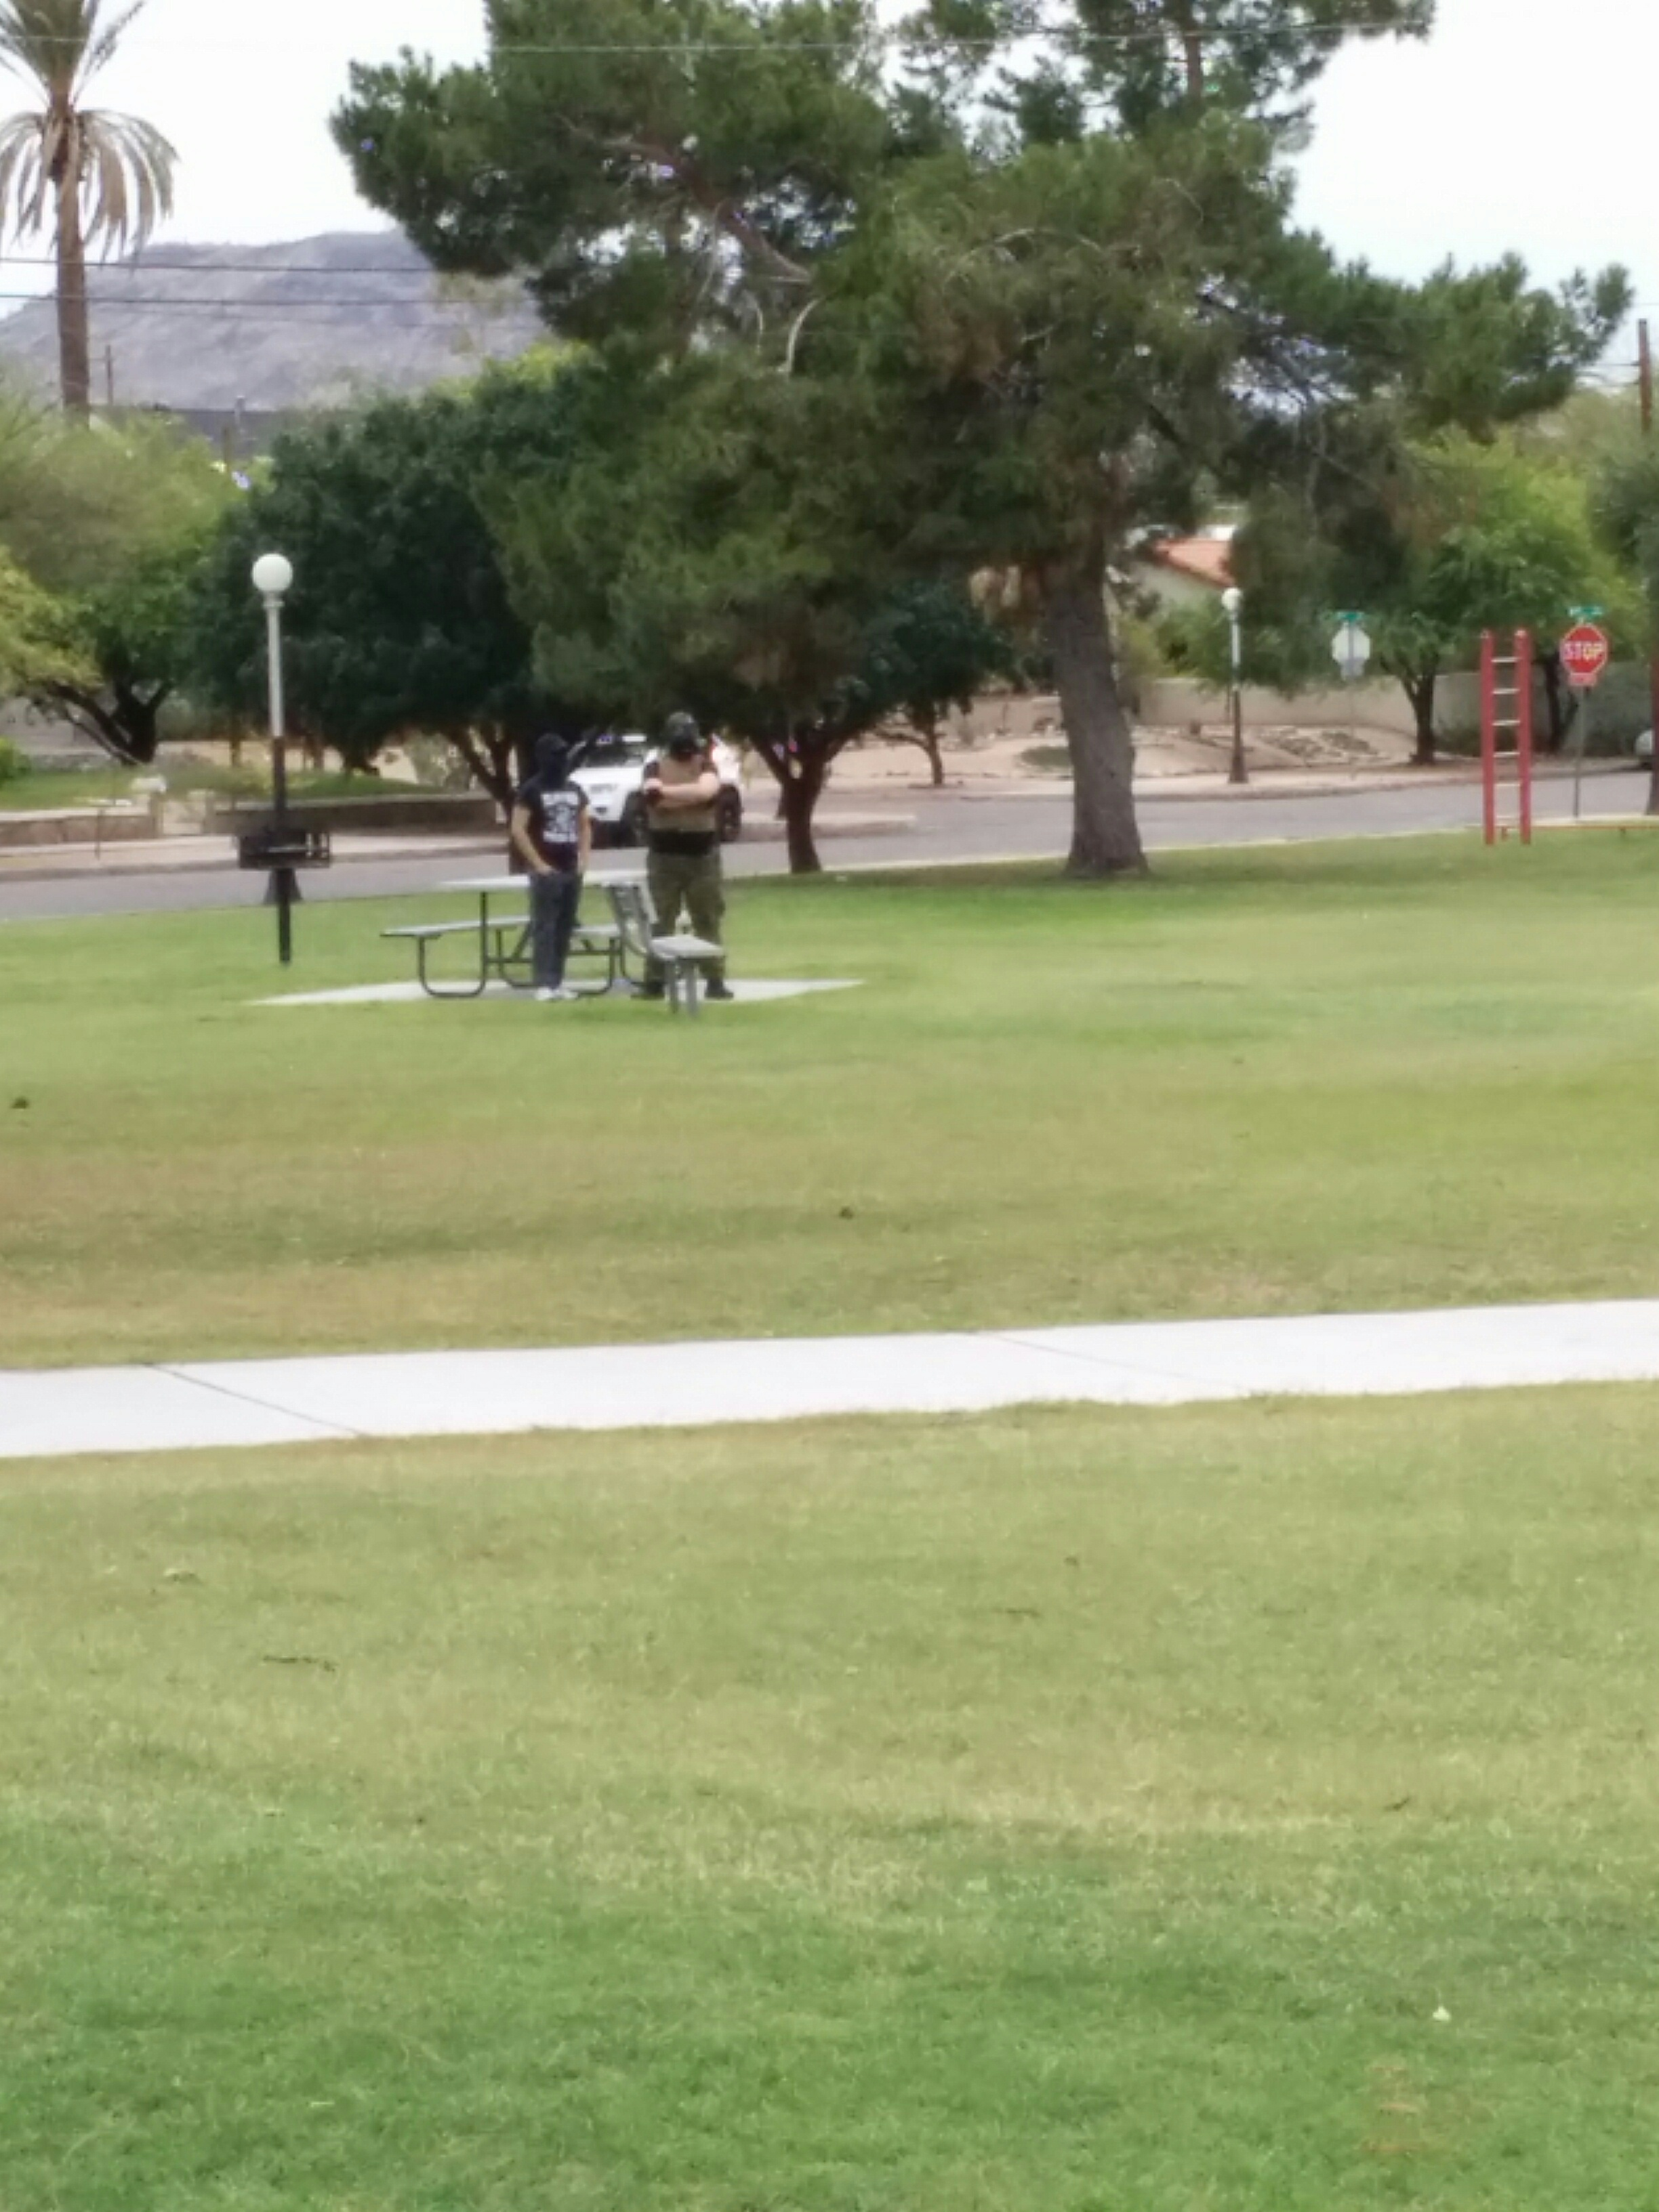 Two Nazis in Catalina park from a distance.  One wears camo pants, a flak jacket and a gask mask.  The other wears grey pants, a White supremacist t-shirt and sunglasses.